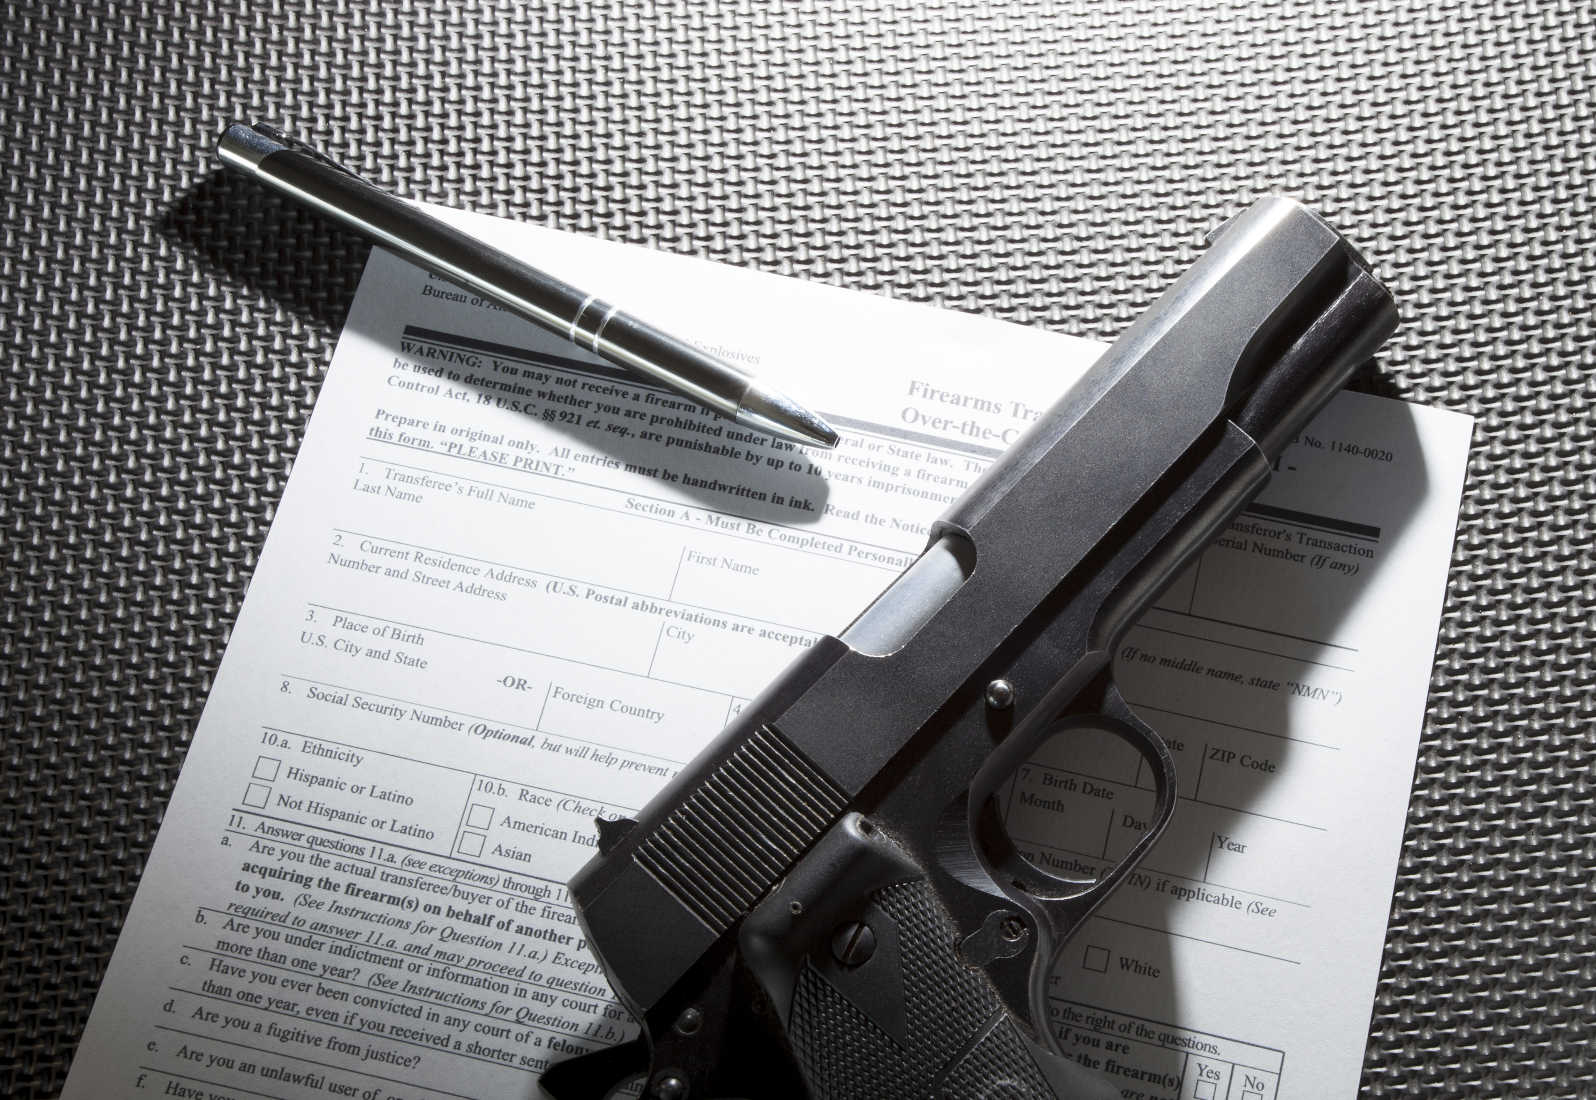 Maryland's Restrictive Gun Laws Challenged, Again